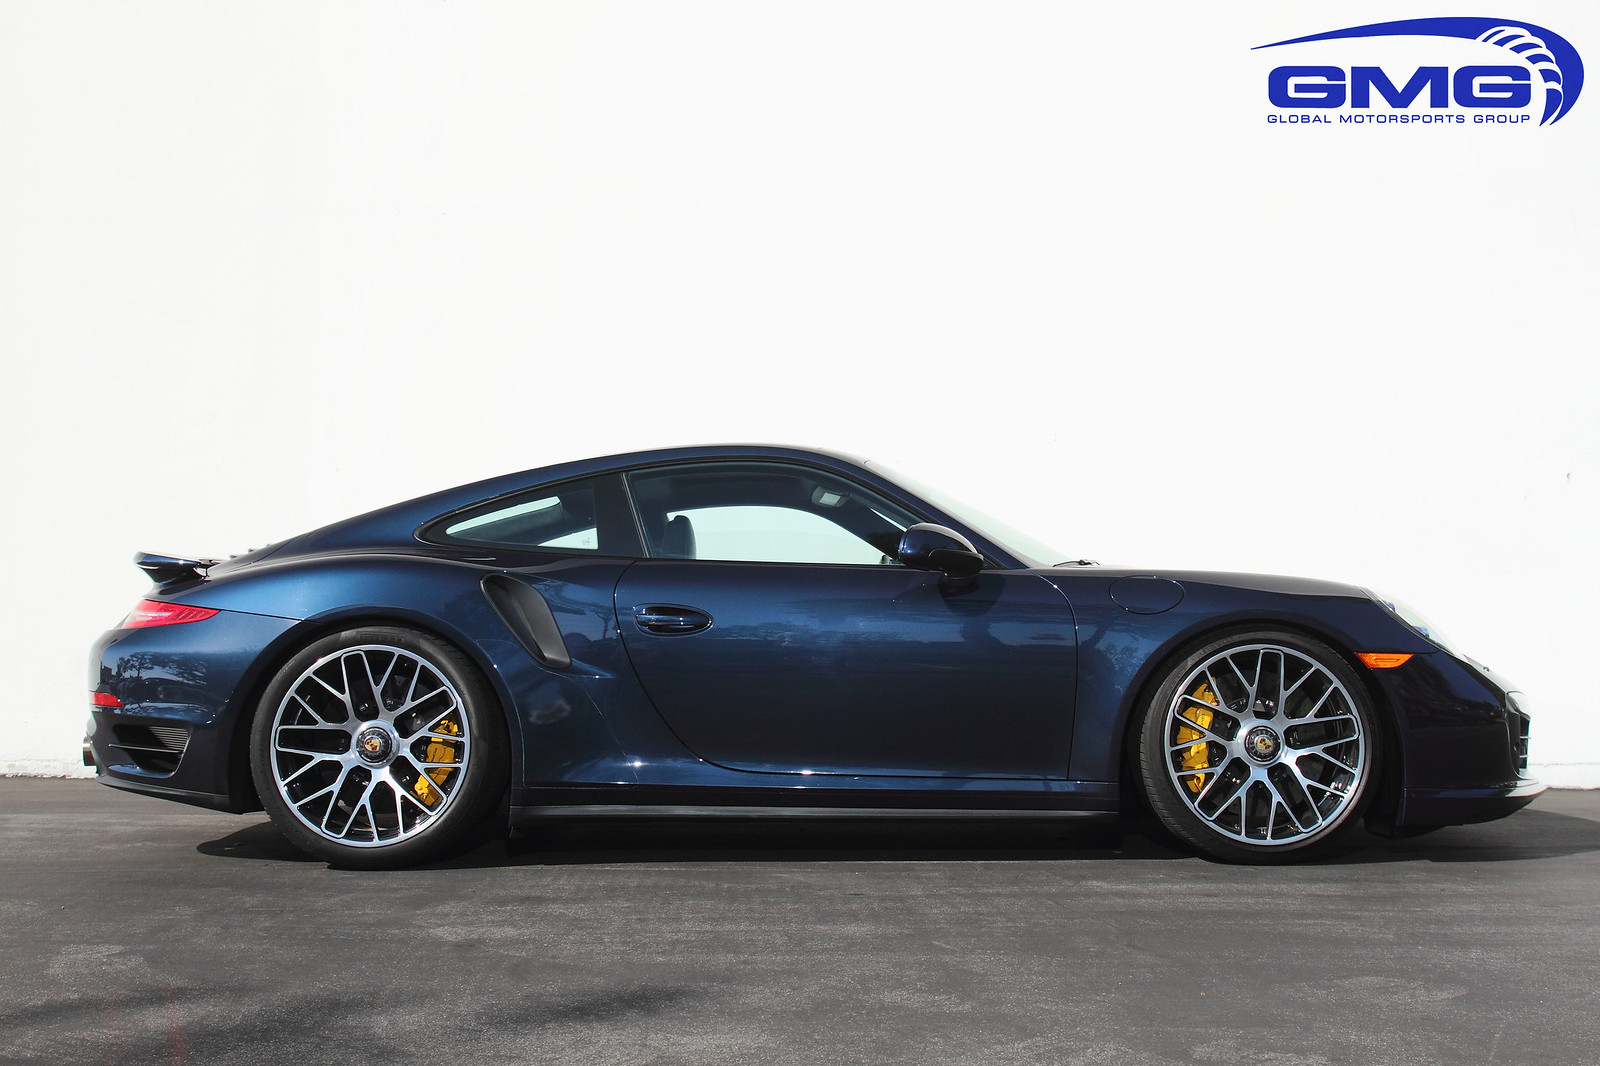 Porsche 991 Turbo S Dark Blue Metallic W Gmg Lowering Springs Exhaust Headers Giac Rennlist